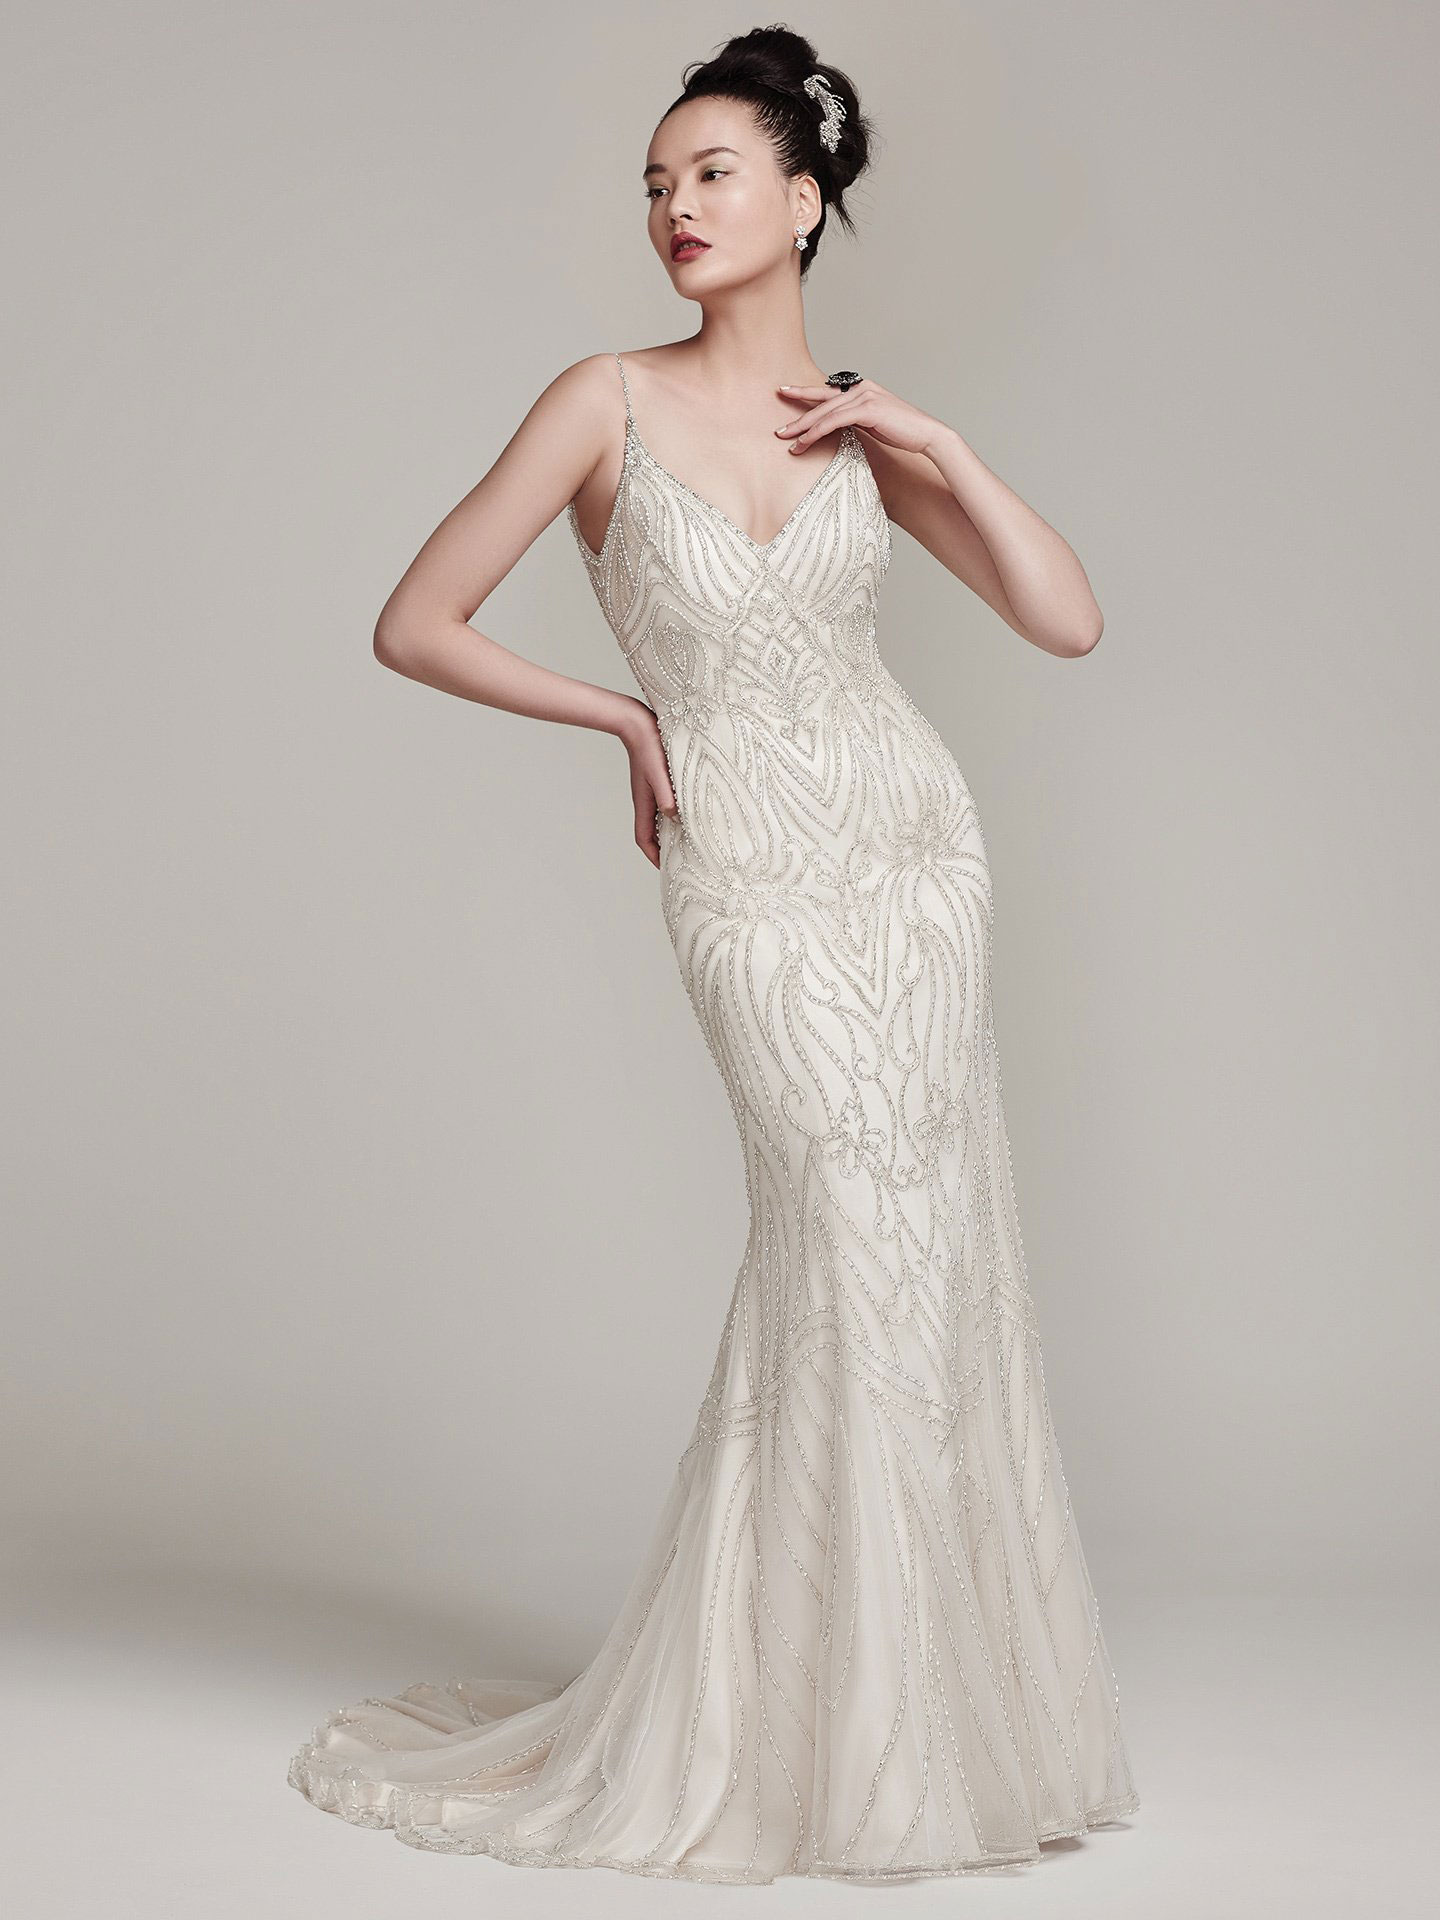 Sottero &#038; Midgley <br> Mikelle<br>Size 12 Was £1,750 Now £1,000